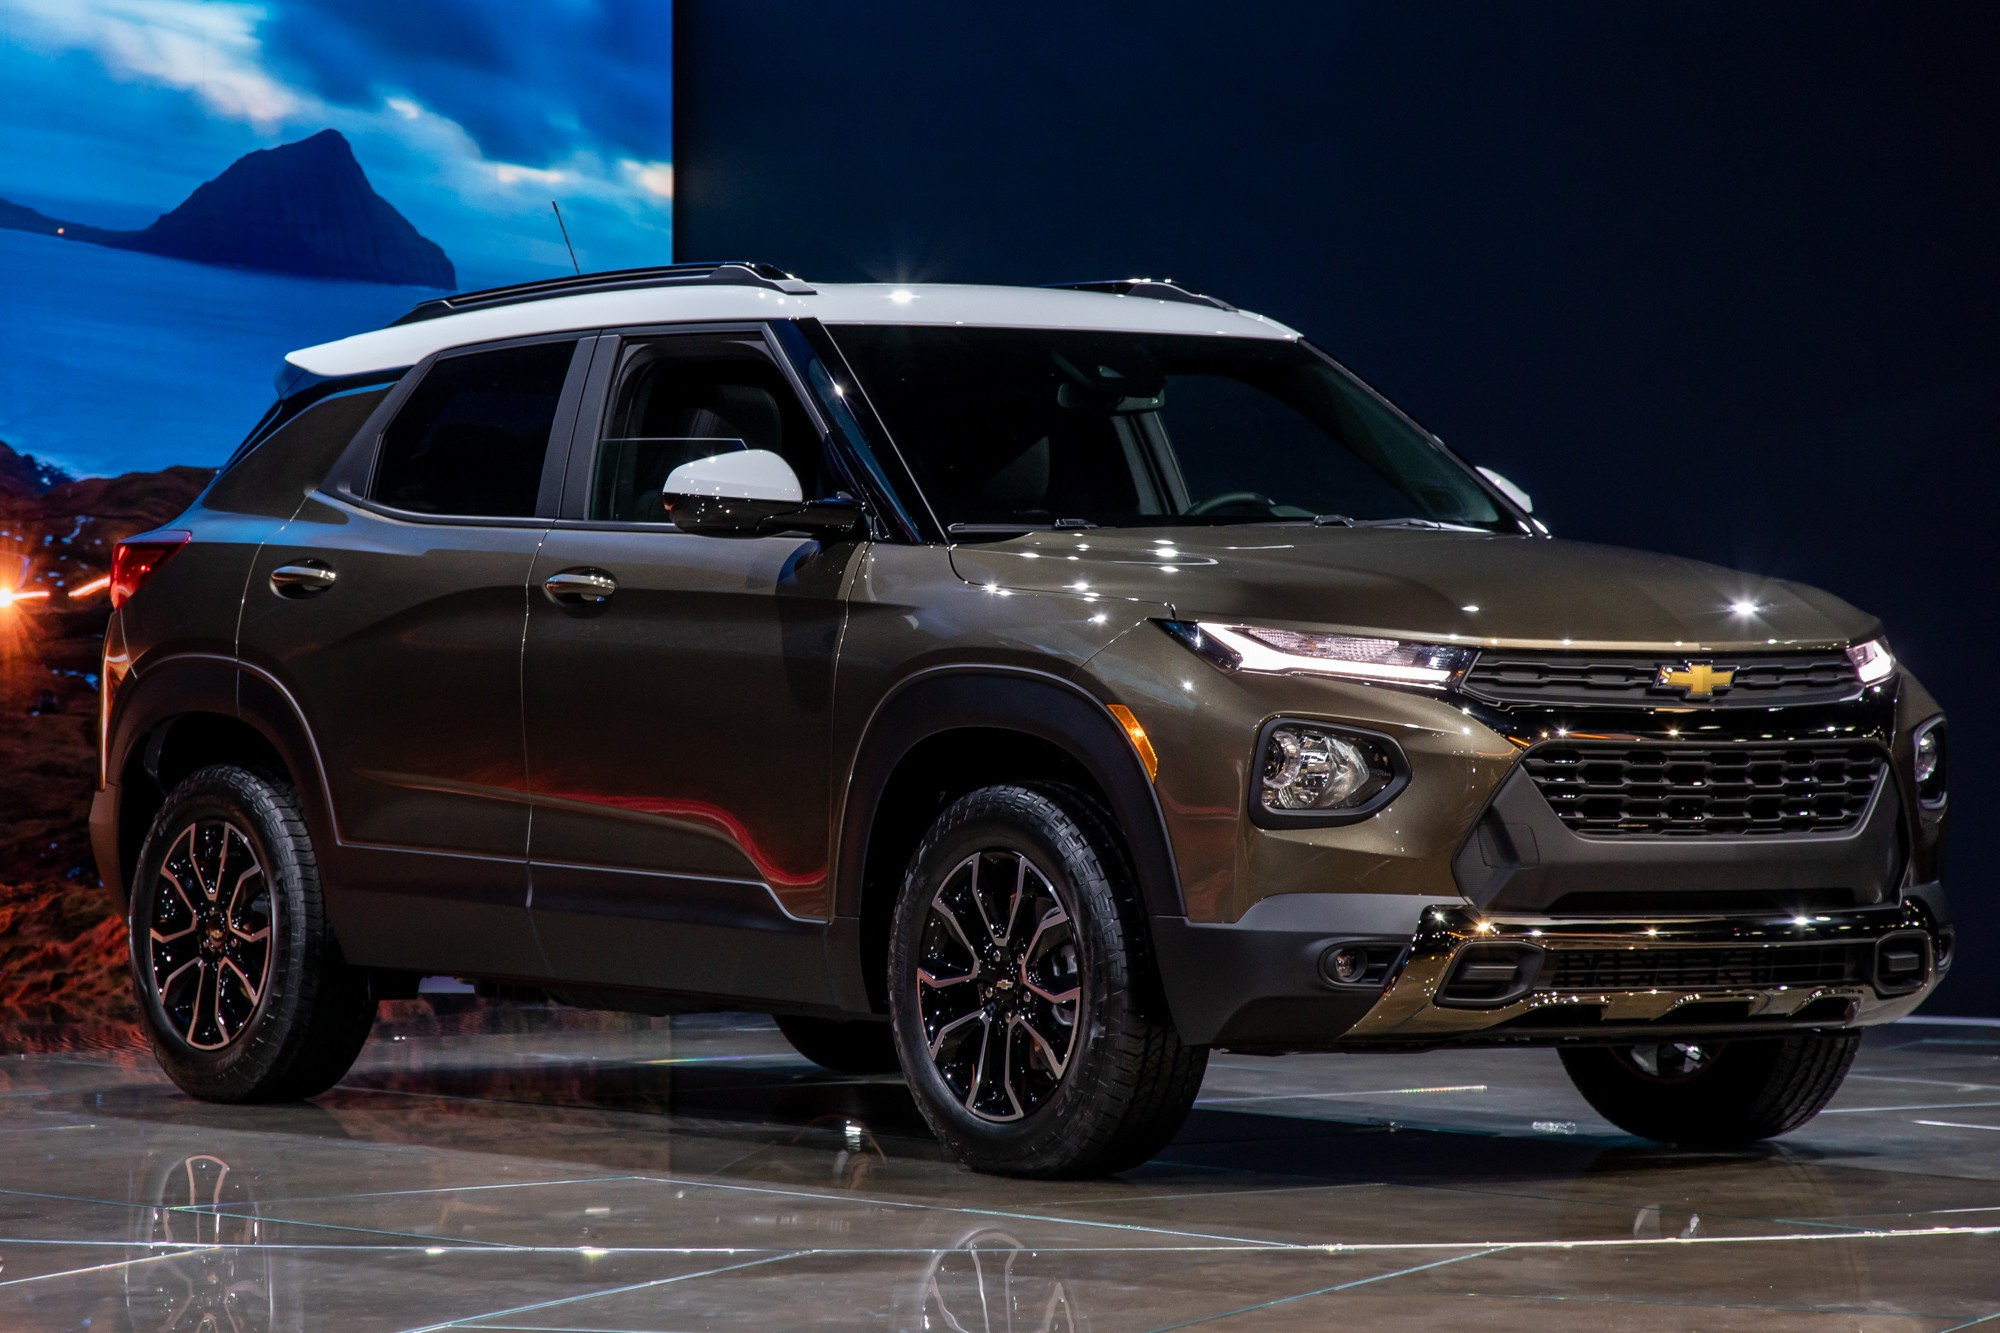 2021 Chevrolet Trailblazer MPG Stays in Lane With Rival SUVs' Fuel Economy